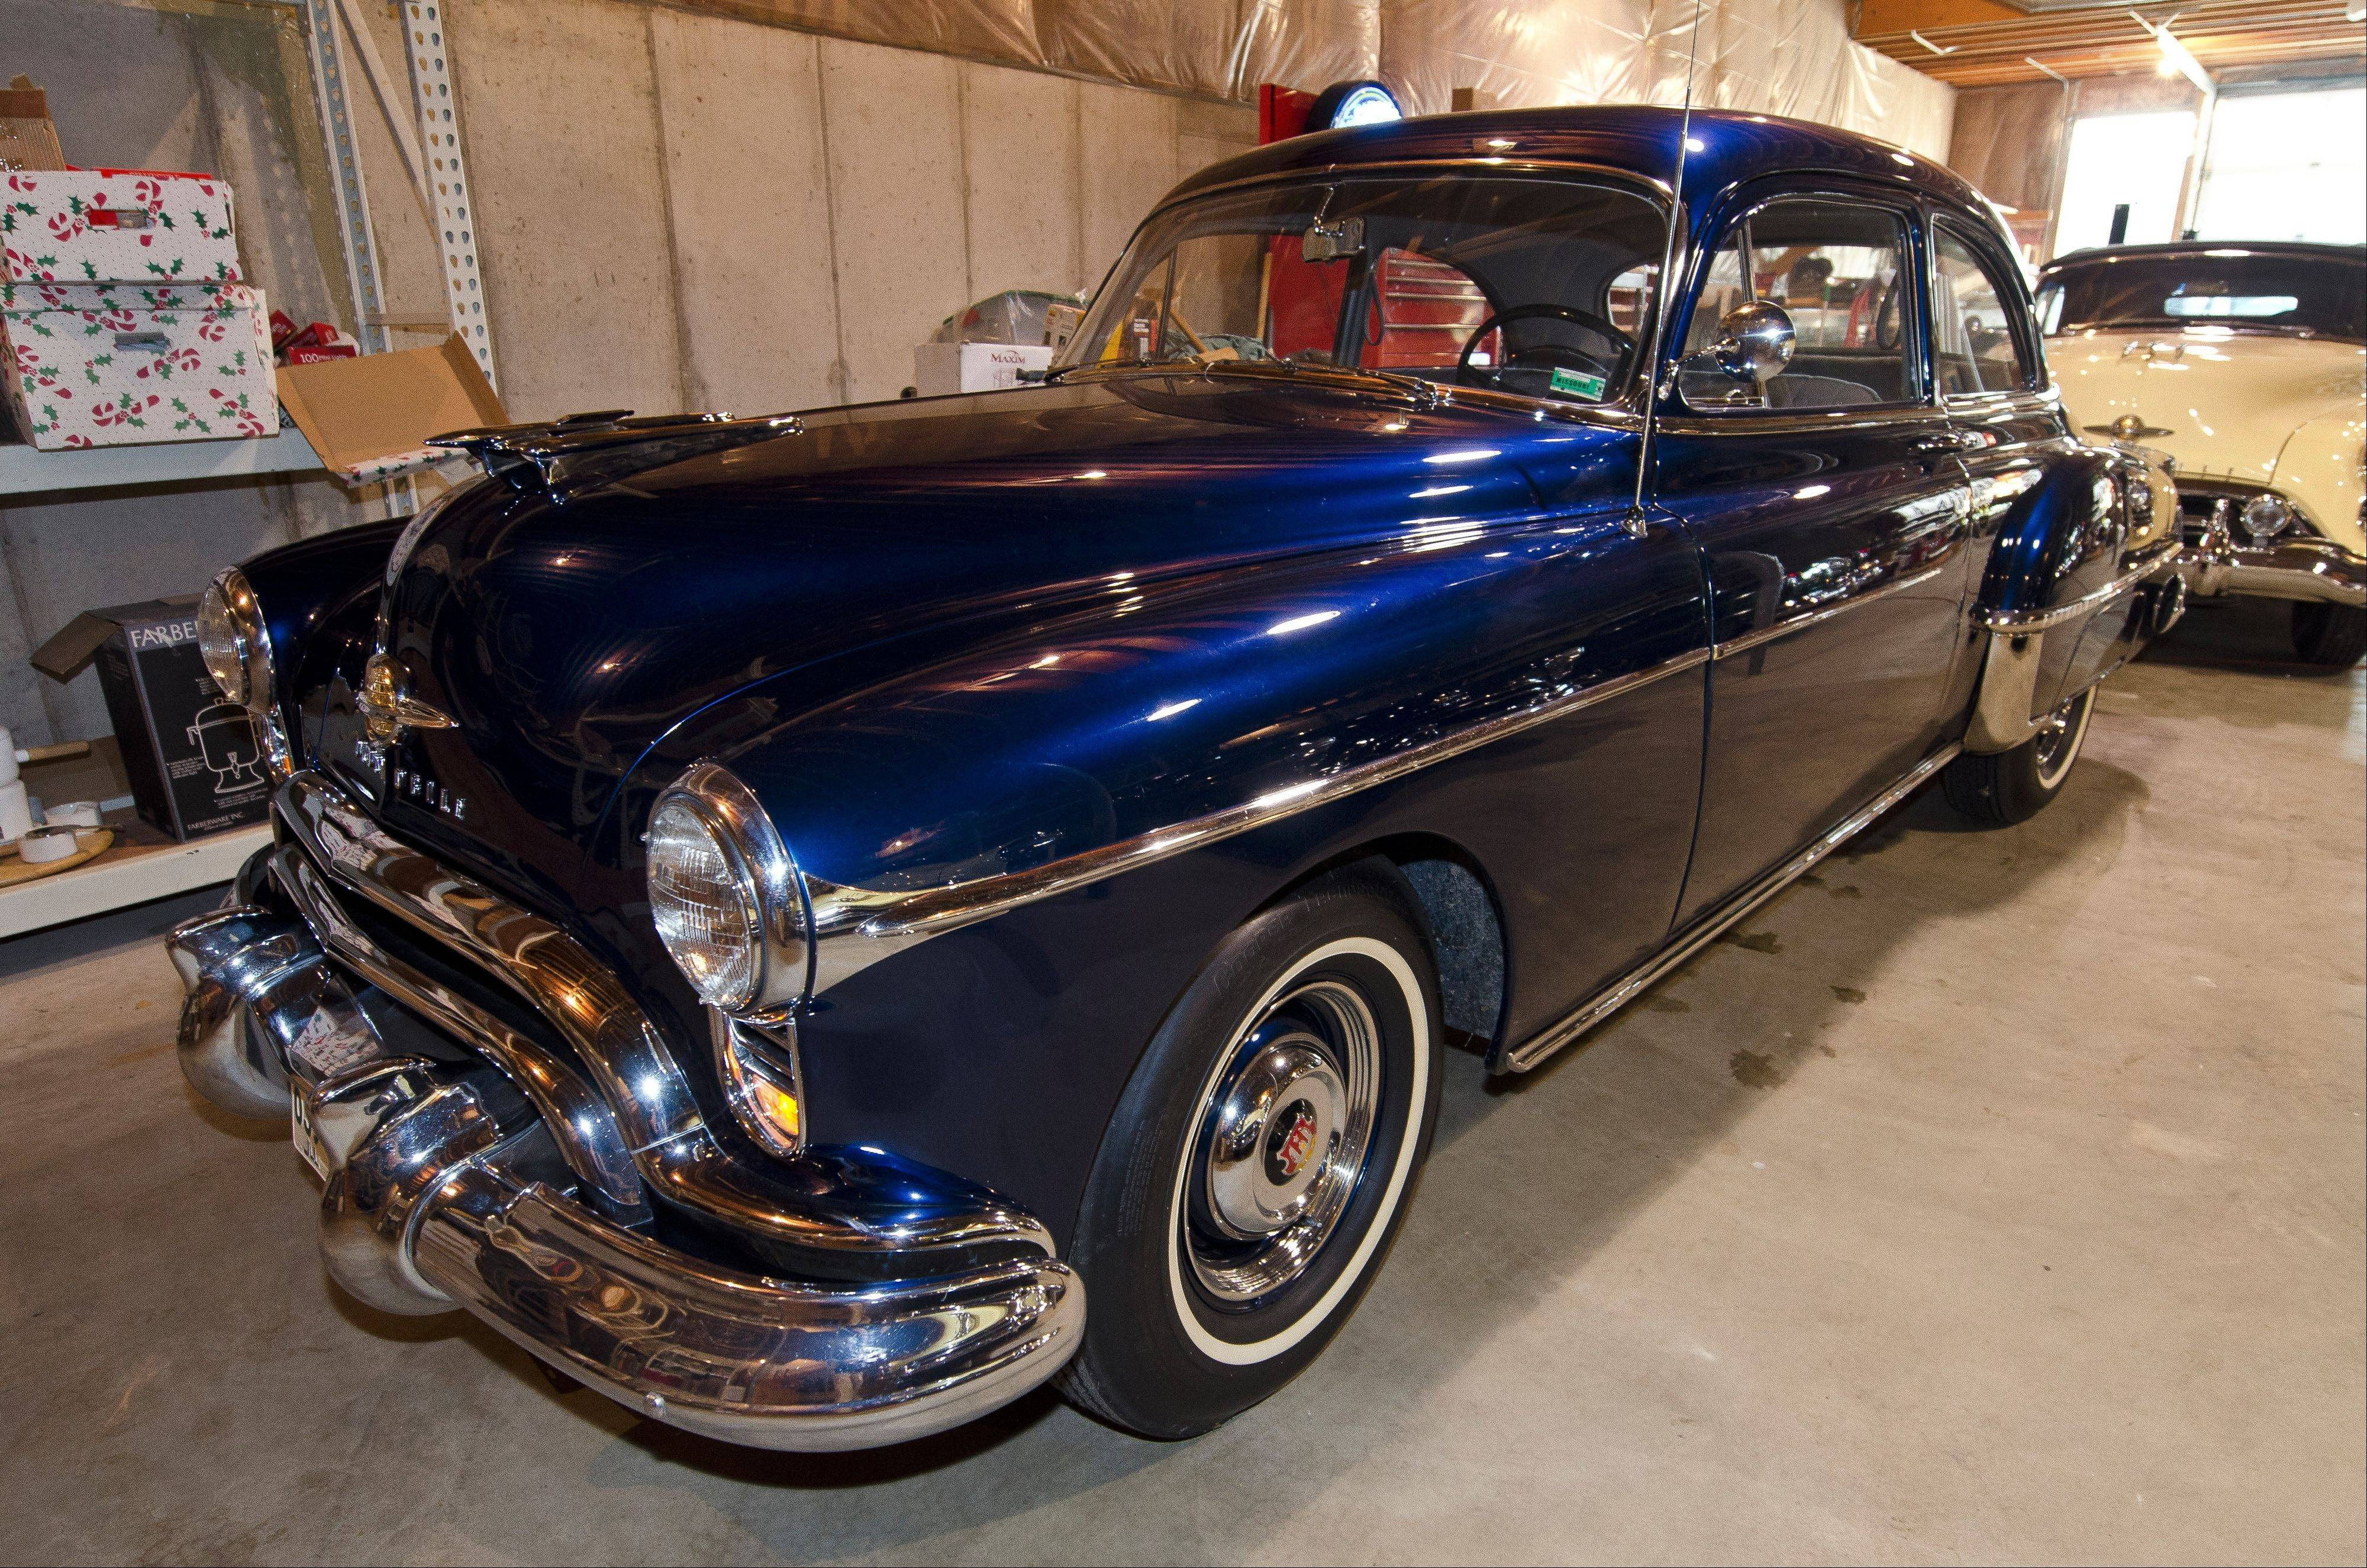 This 1950 88 is nearly identical to Albrecht's first Oldsmobile. He used a modern Toyota color to match the original Surge Blue paint.